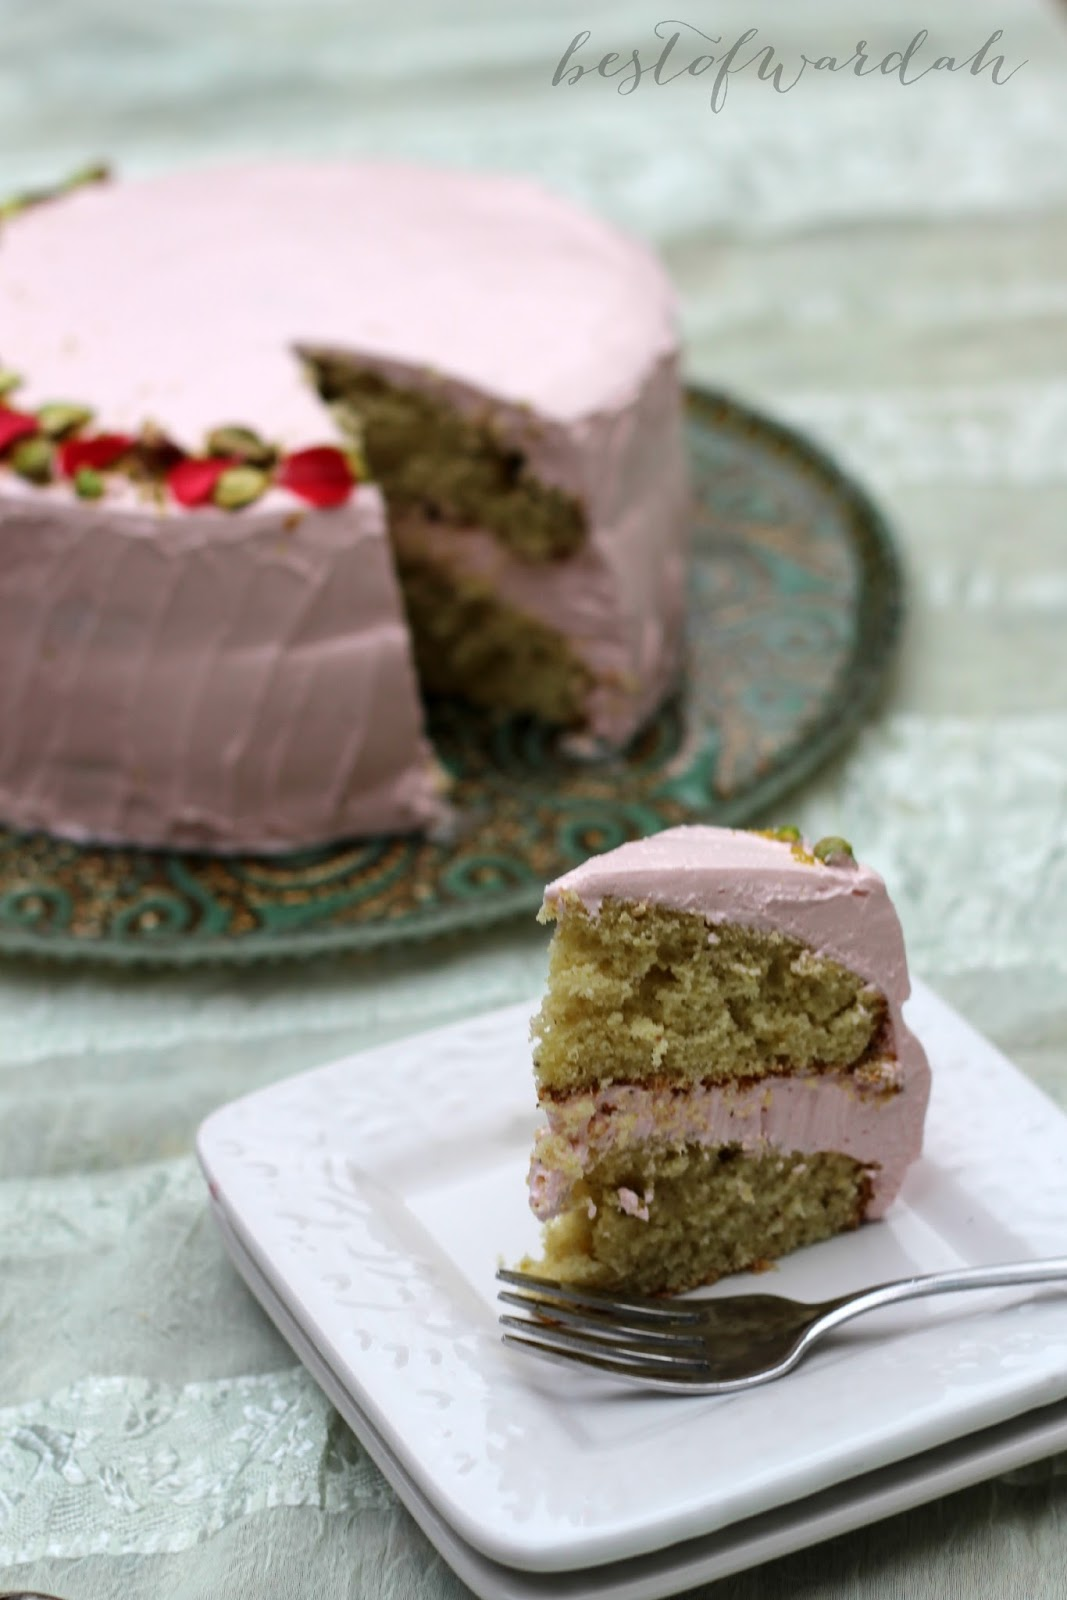 Best of Wardah: Pistachio Cardamom Cake with Rosewater Frosting